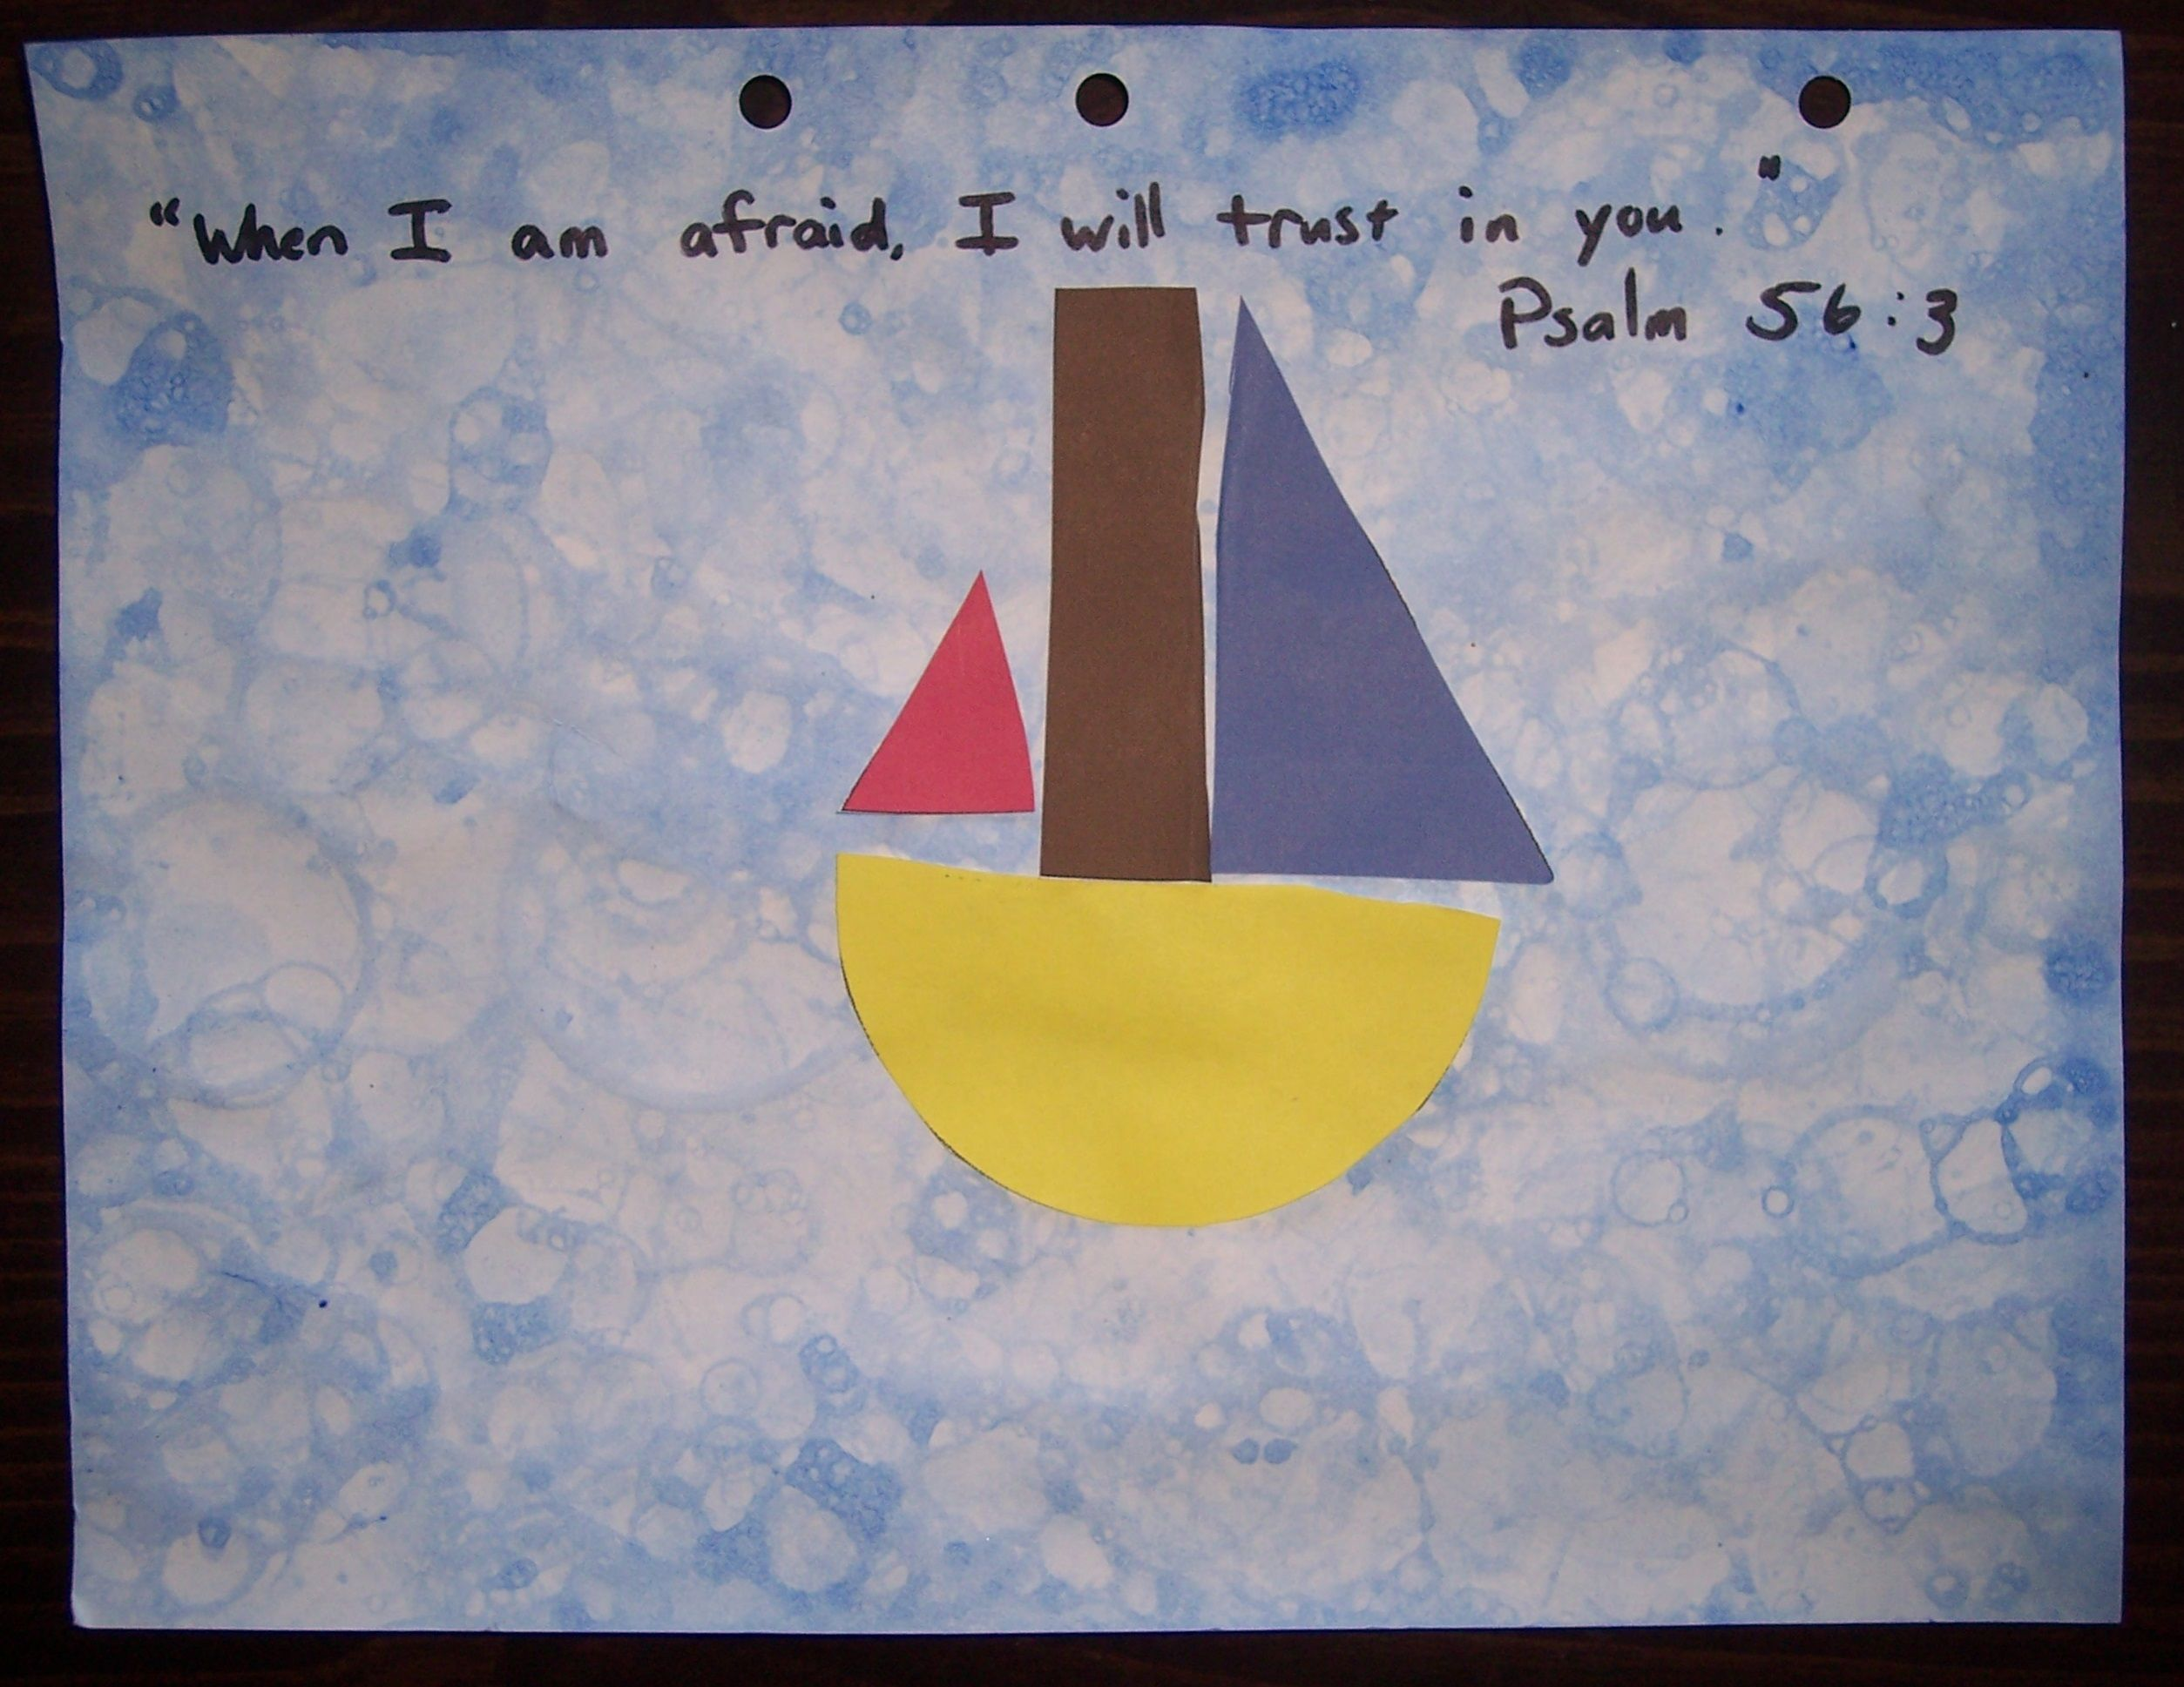 Toddler sunday school crafts - Week 27 Day 3 Jesus Calms The Storm Craft And Music Ideas